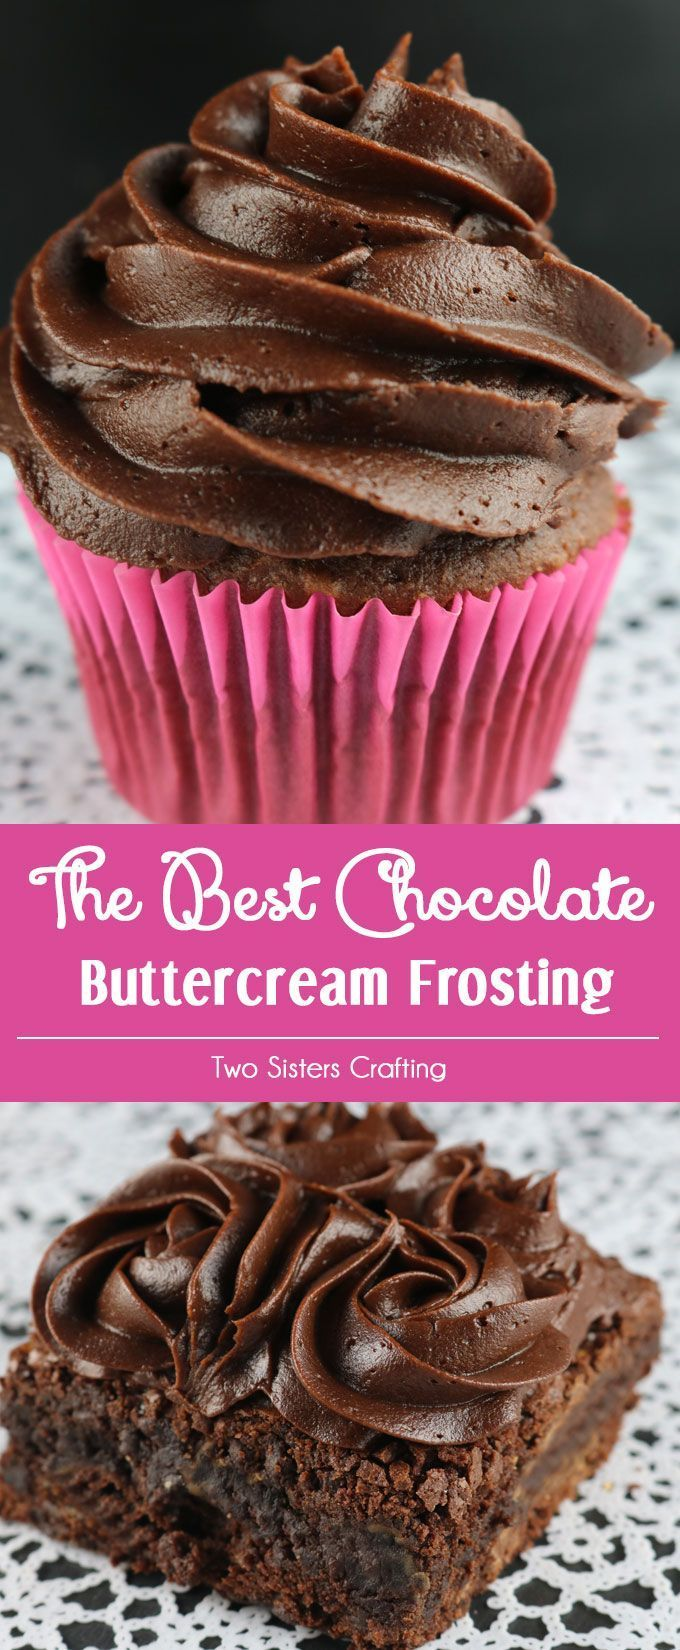 The Best Chocolate Buttercream Frosting Recipe Best Chocolate Buttercream Frosting Frosting Recipes Desserts